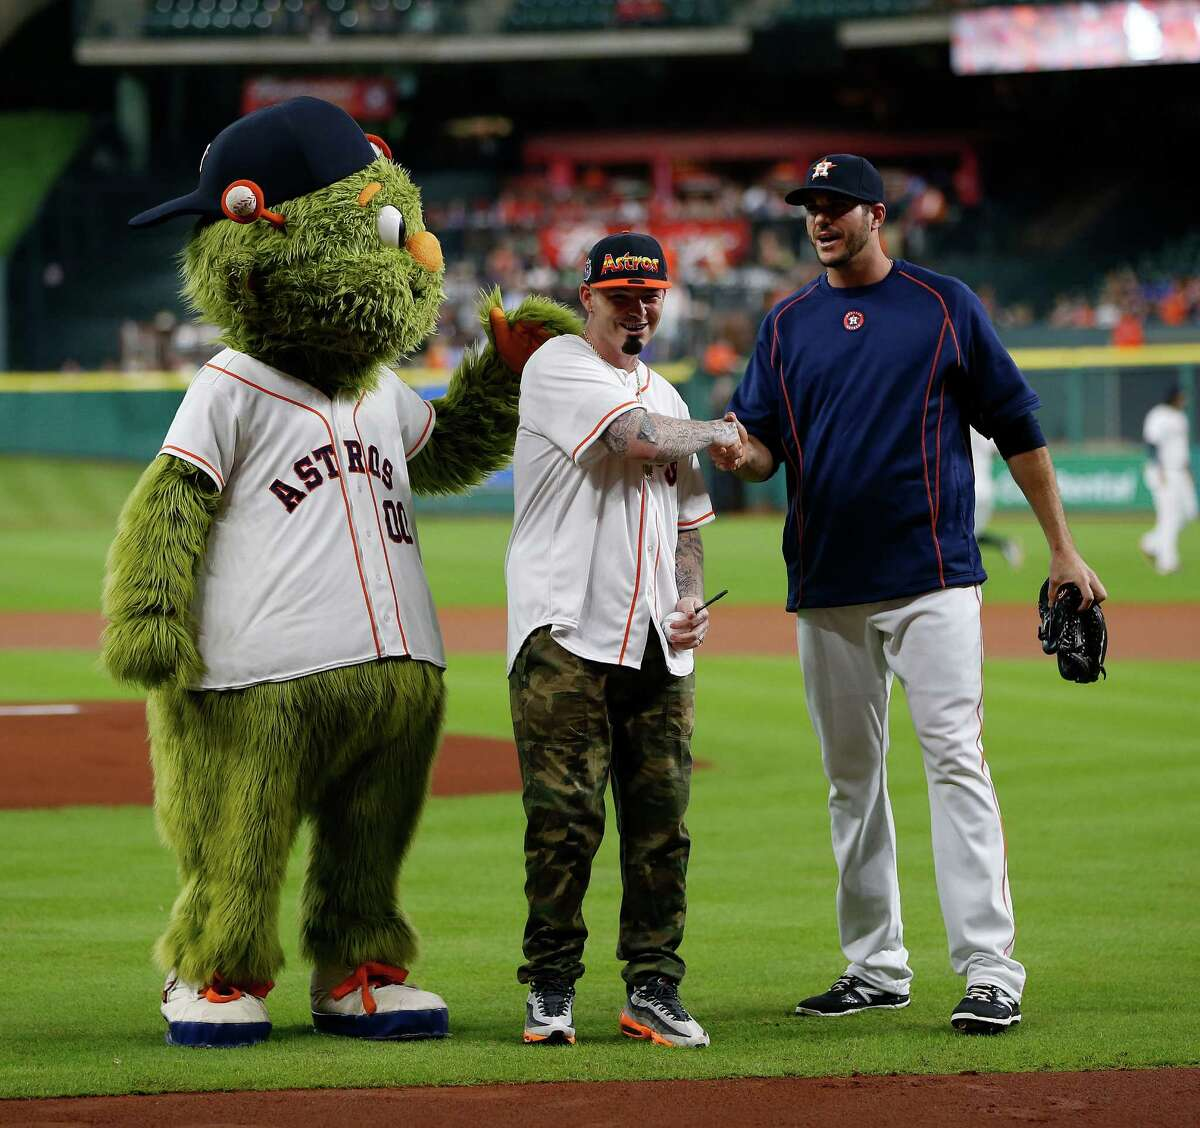 Rapper Paul Wall with Orbit and Houston Astros relief pitcher James Hoyt (51) after throwing out the first pitch before the start of an MLB game at Minute Maid Park,Tuesday, Aug. 16, 2016, in Houston.